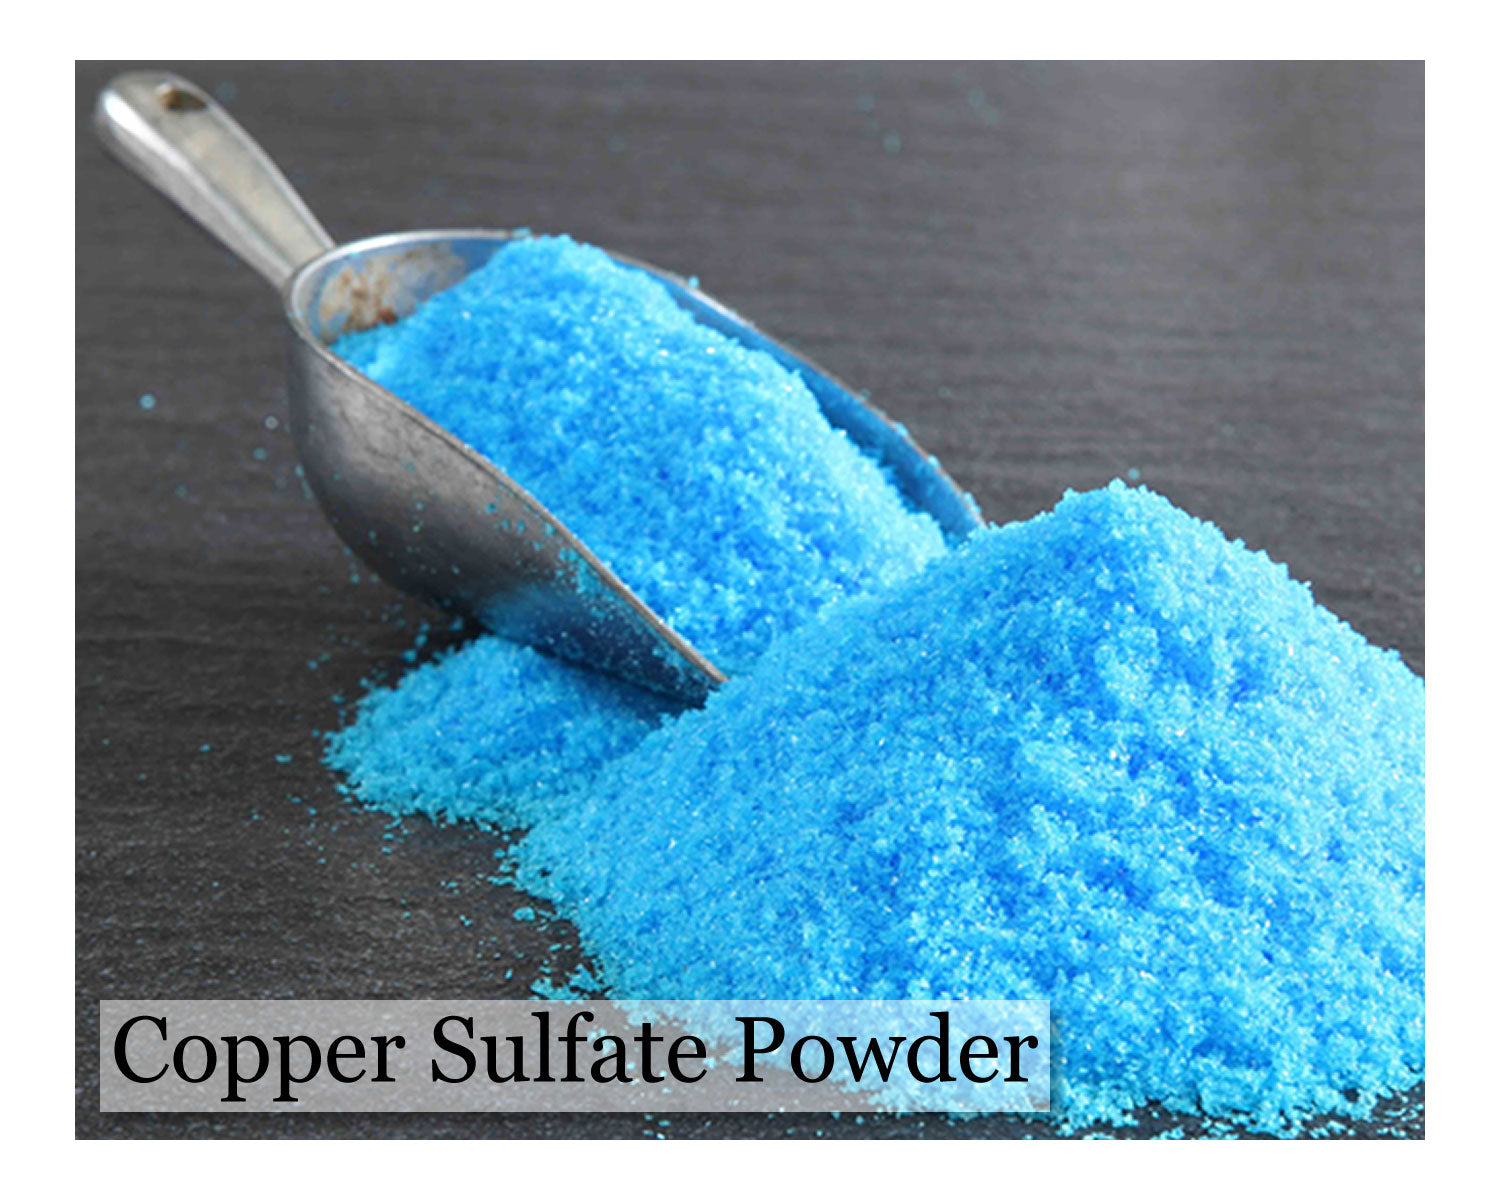 Copper Sulfate Powder - 16 oz - Wholesale